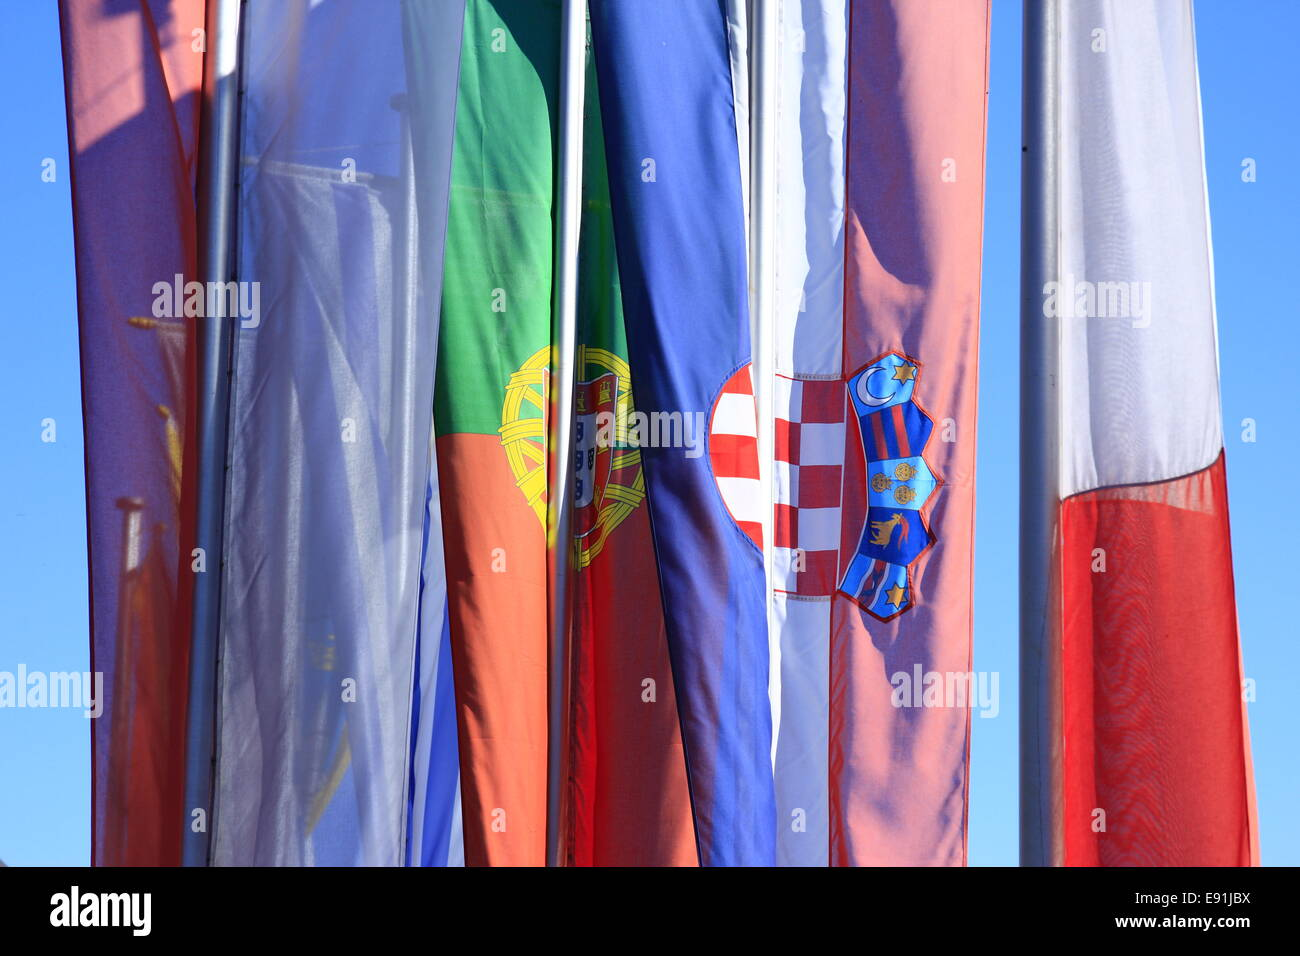 Flags of countries of the European Union - Stock Image